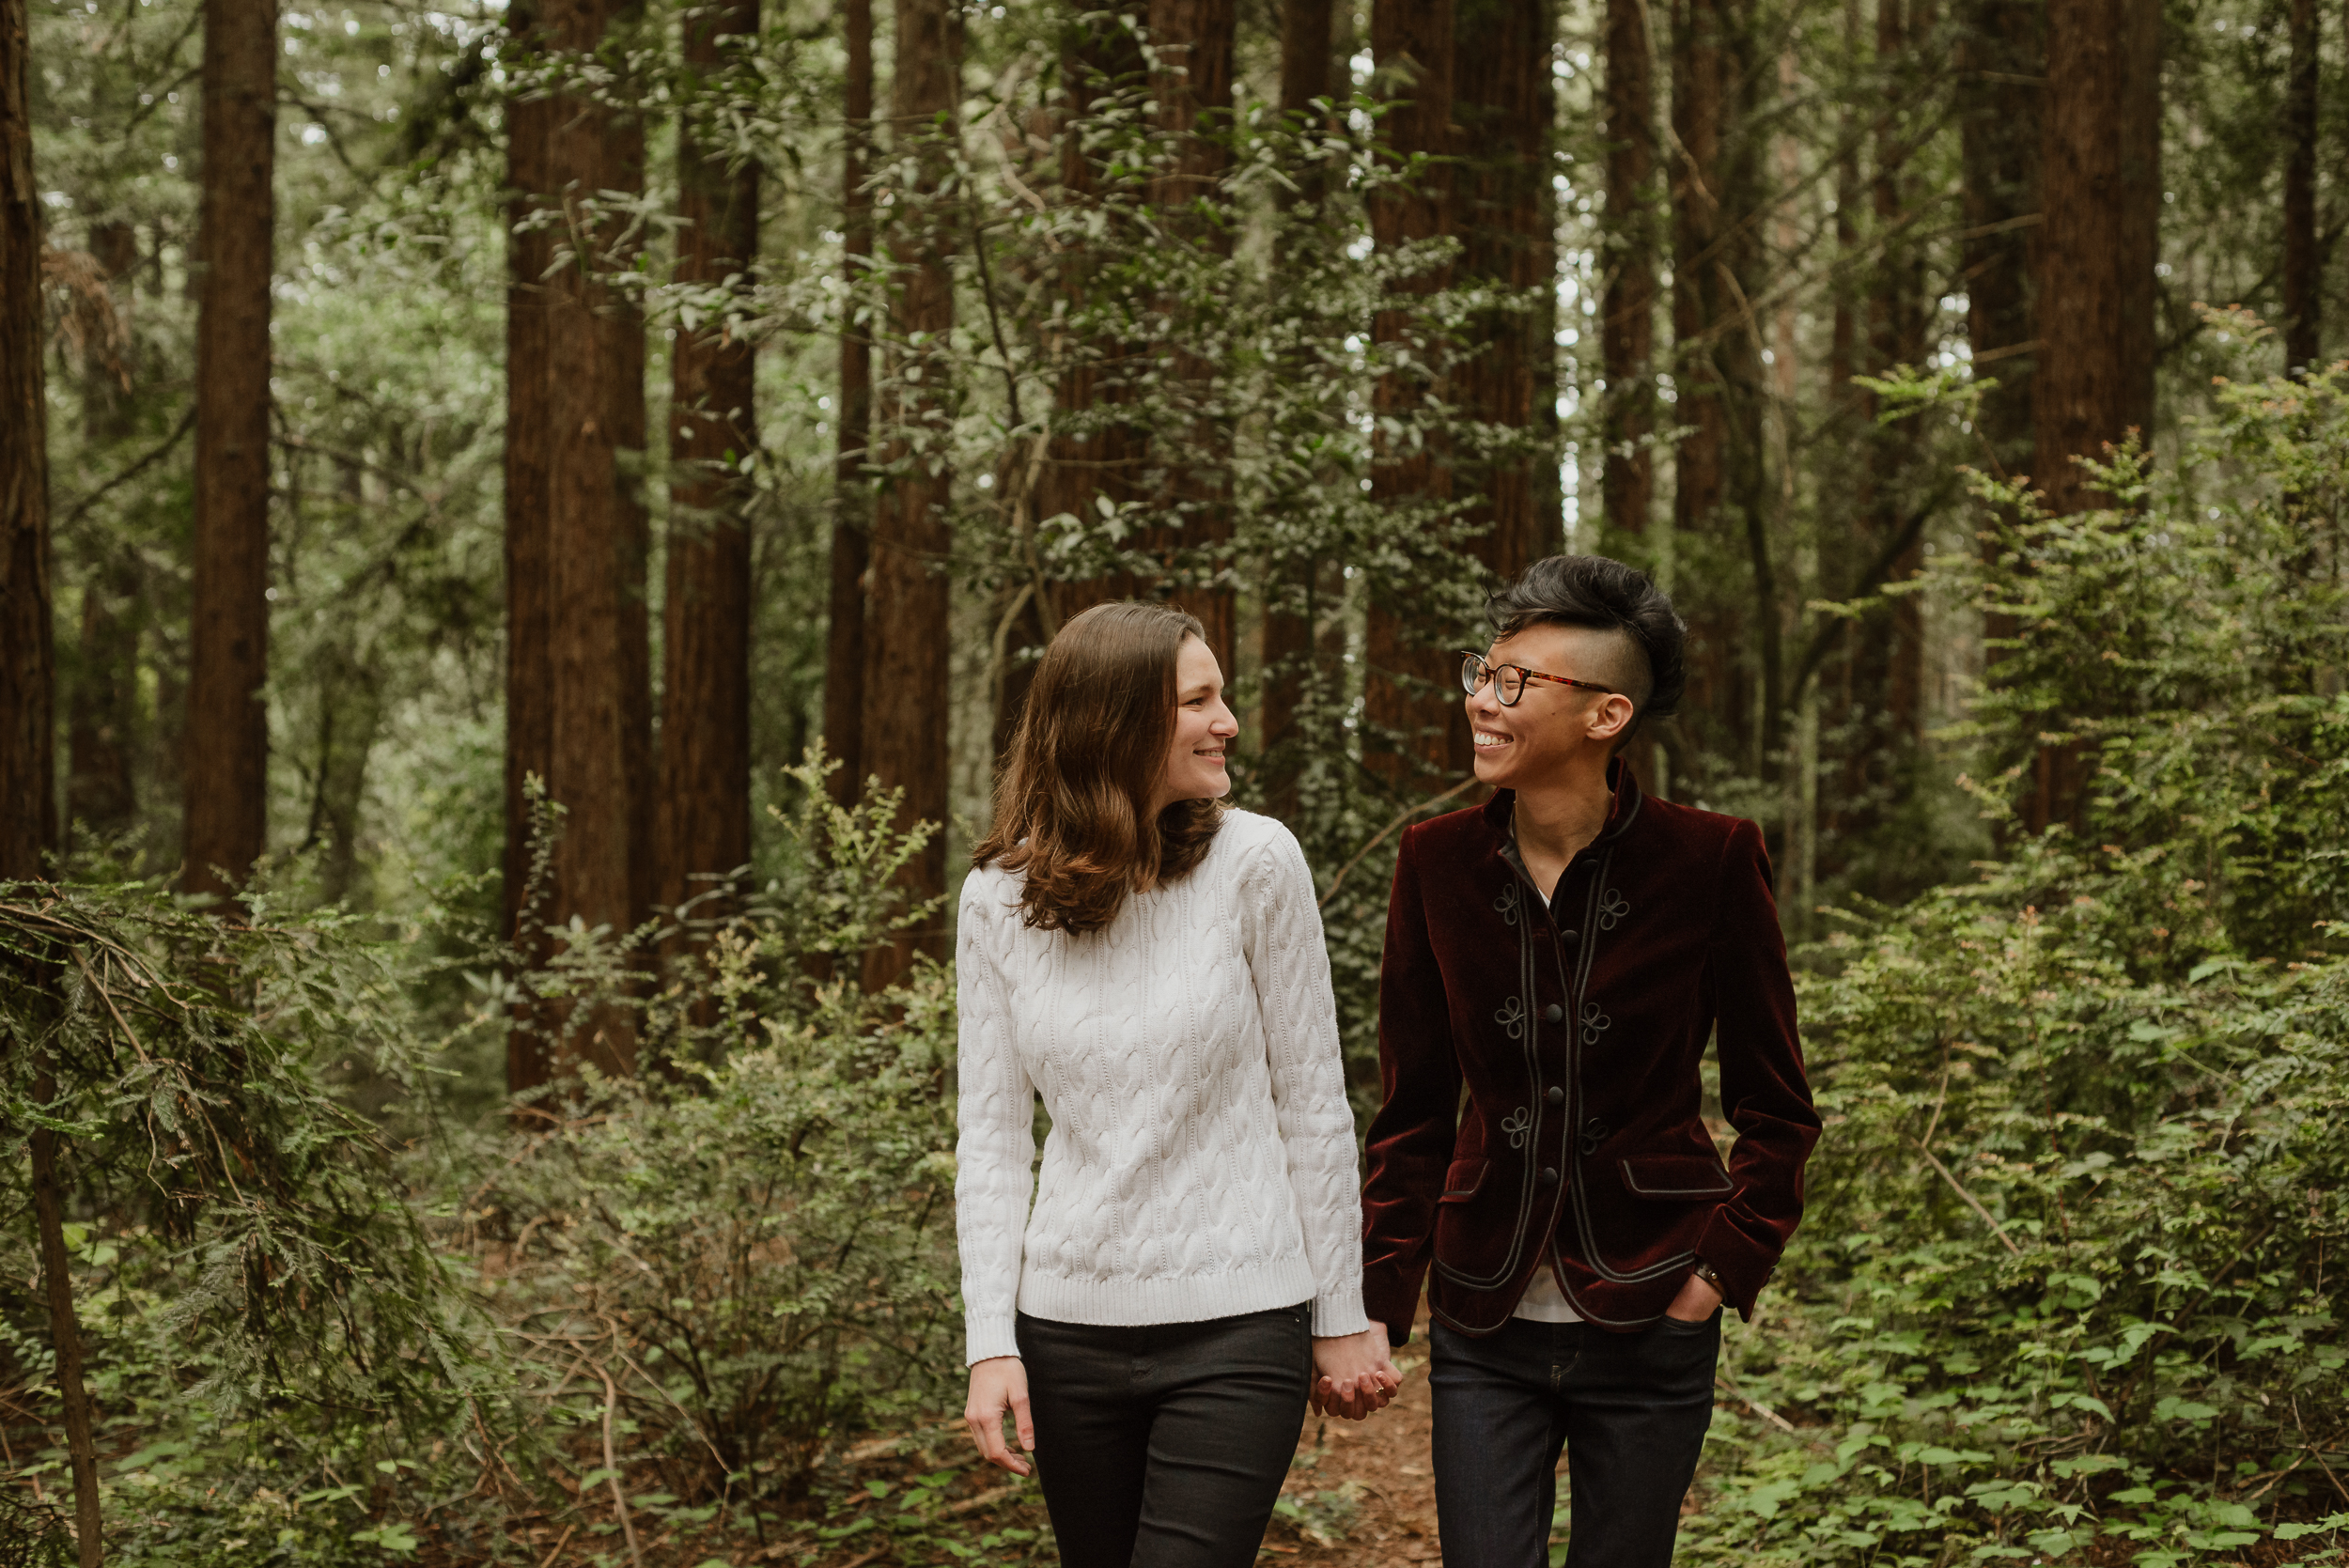 oakland-redwood-regional-park-engagement-session-vivianchen-090.jpg